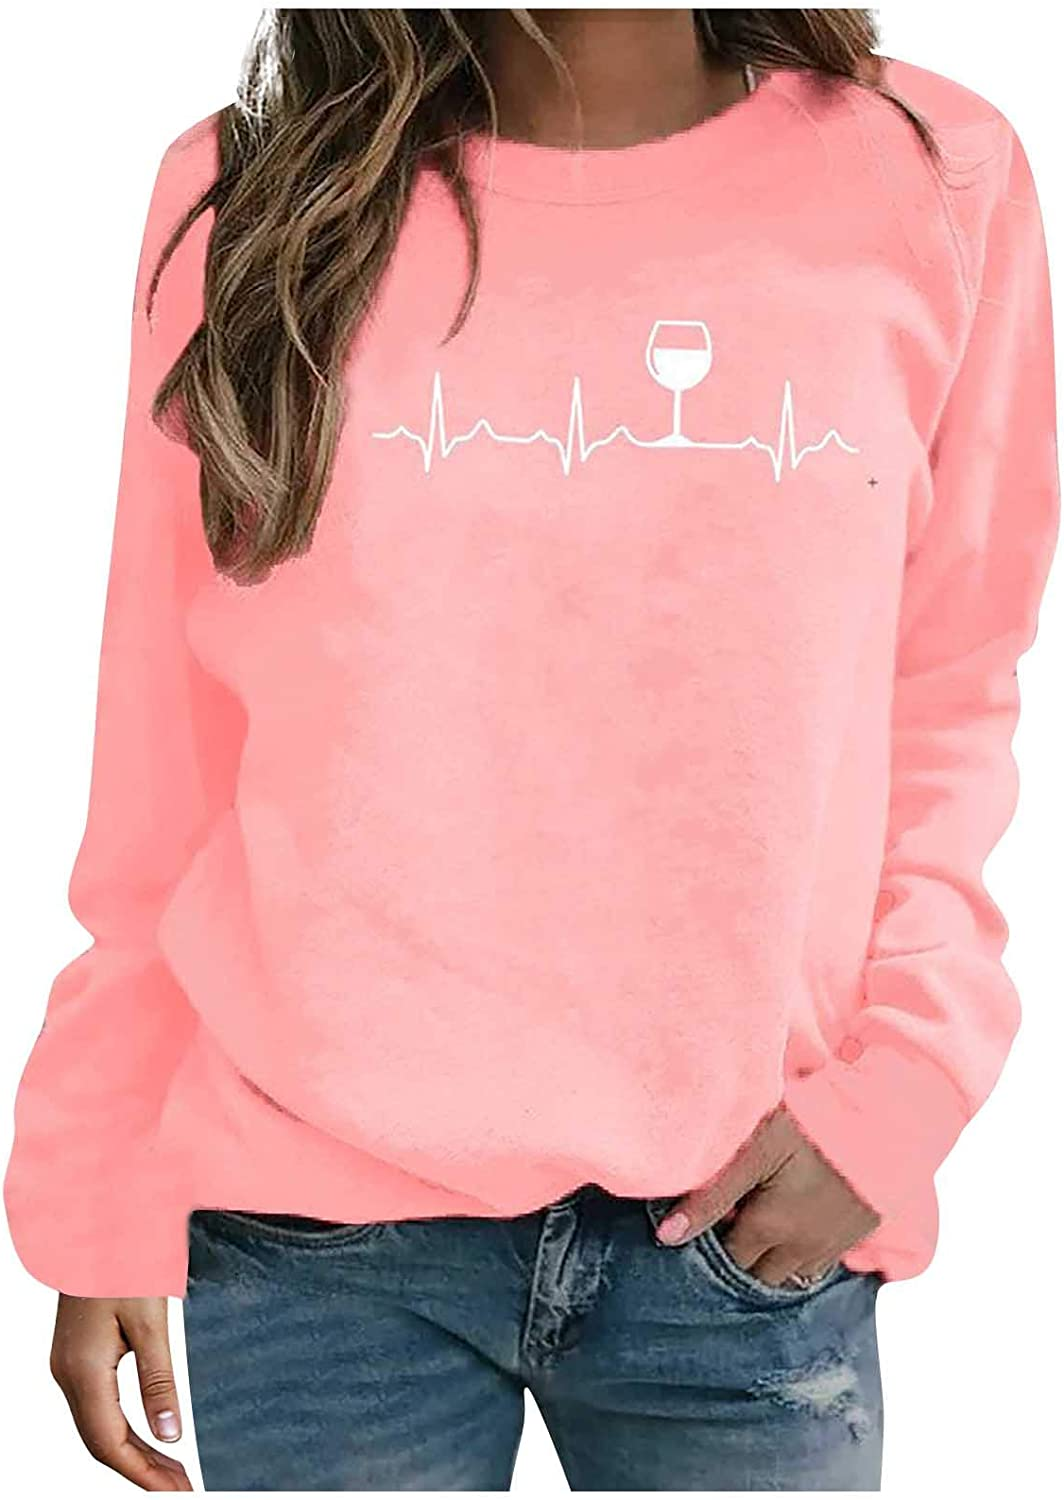 SSZZoo Women's Fashion Long Sleeve Printed Sweatershirt Loose Blouse Tops